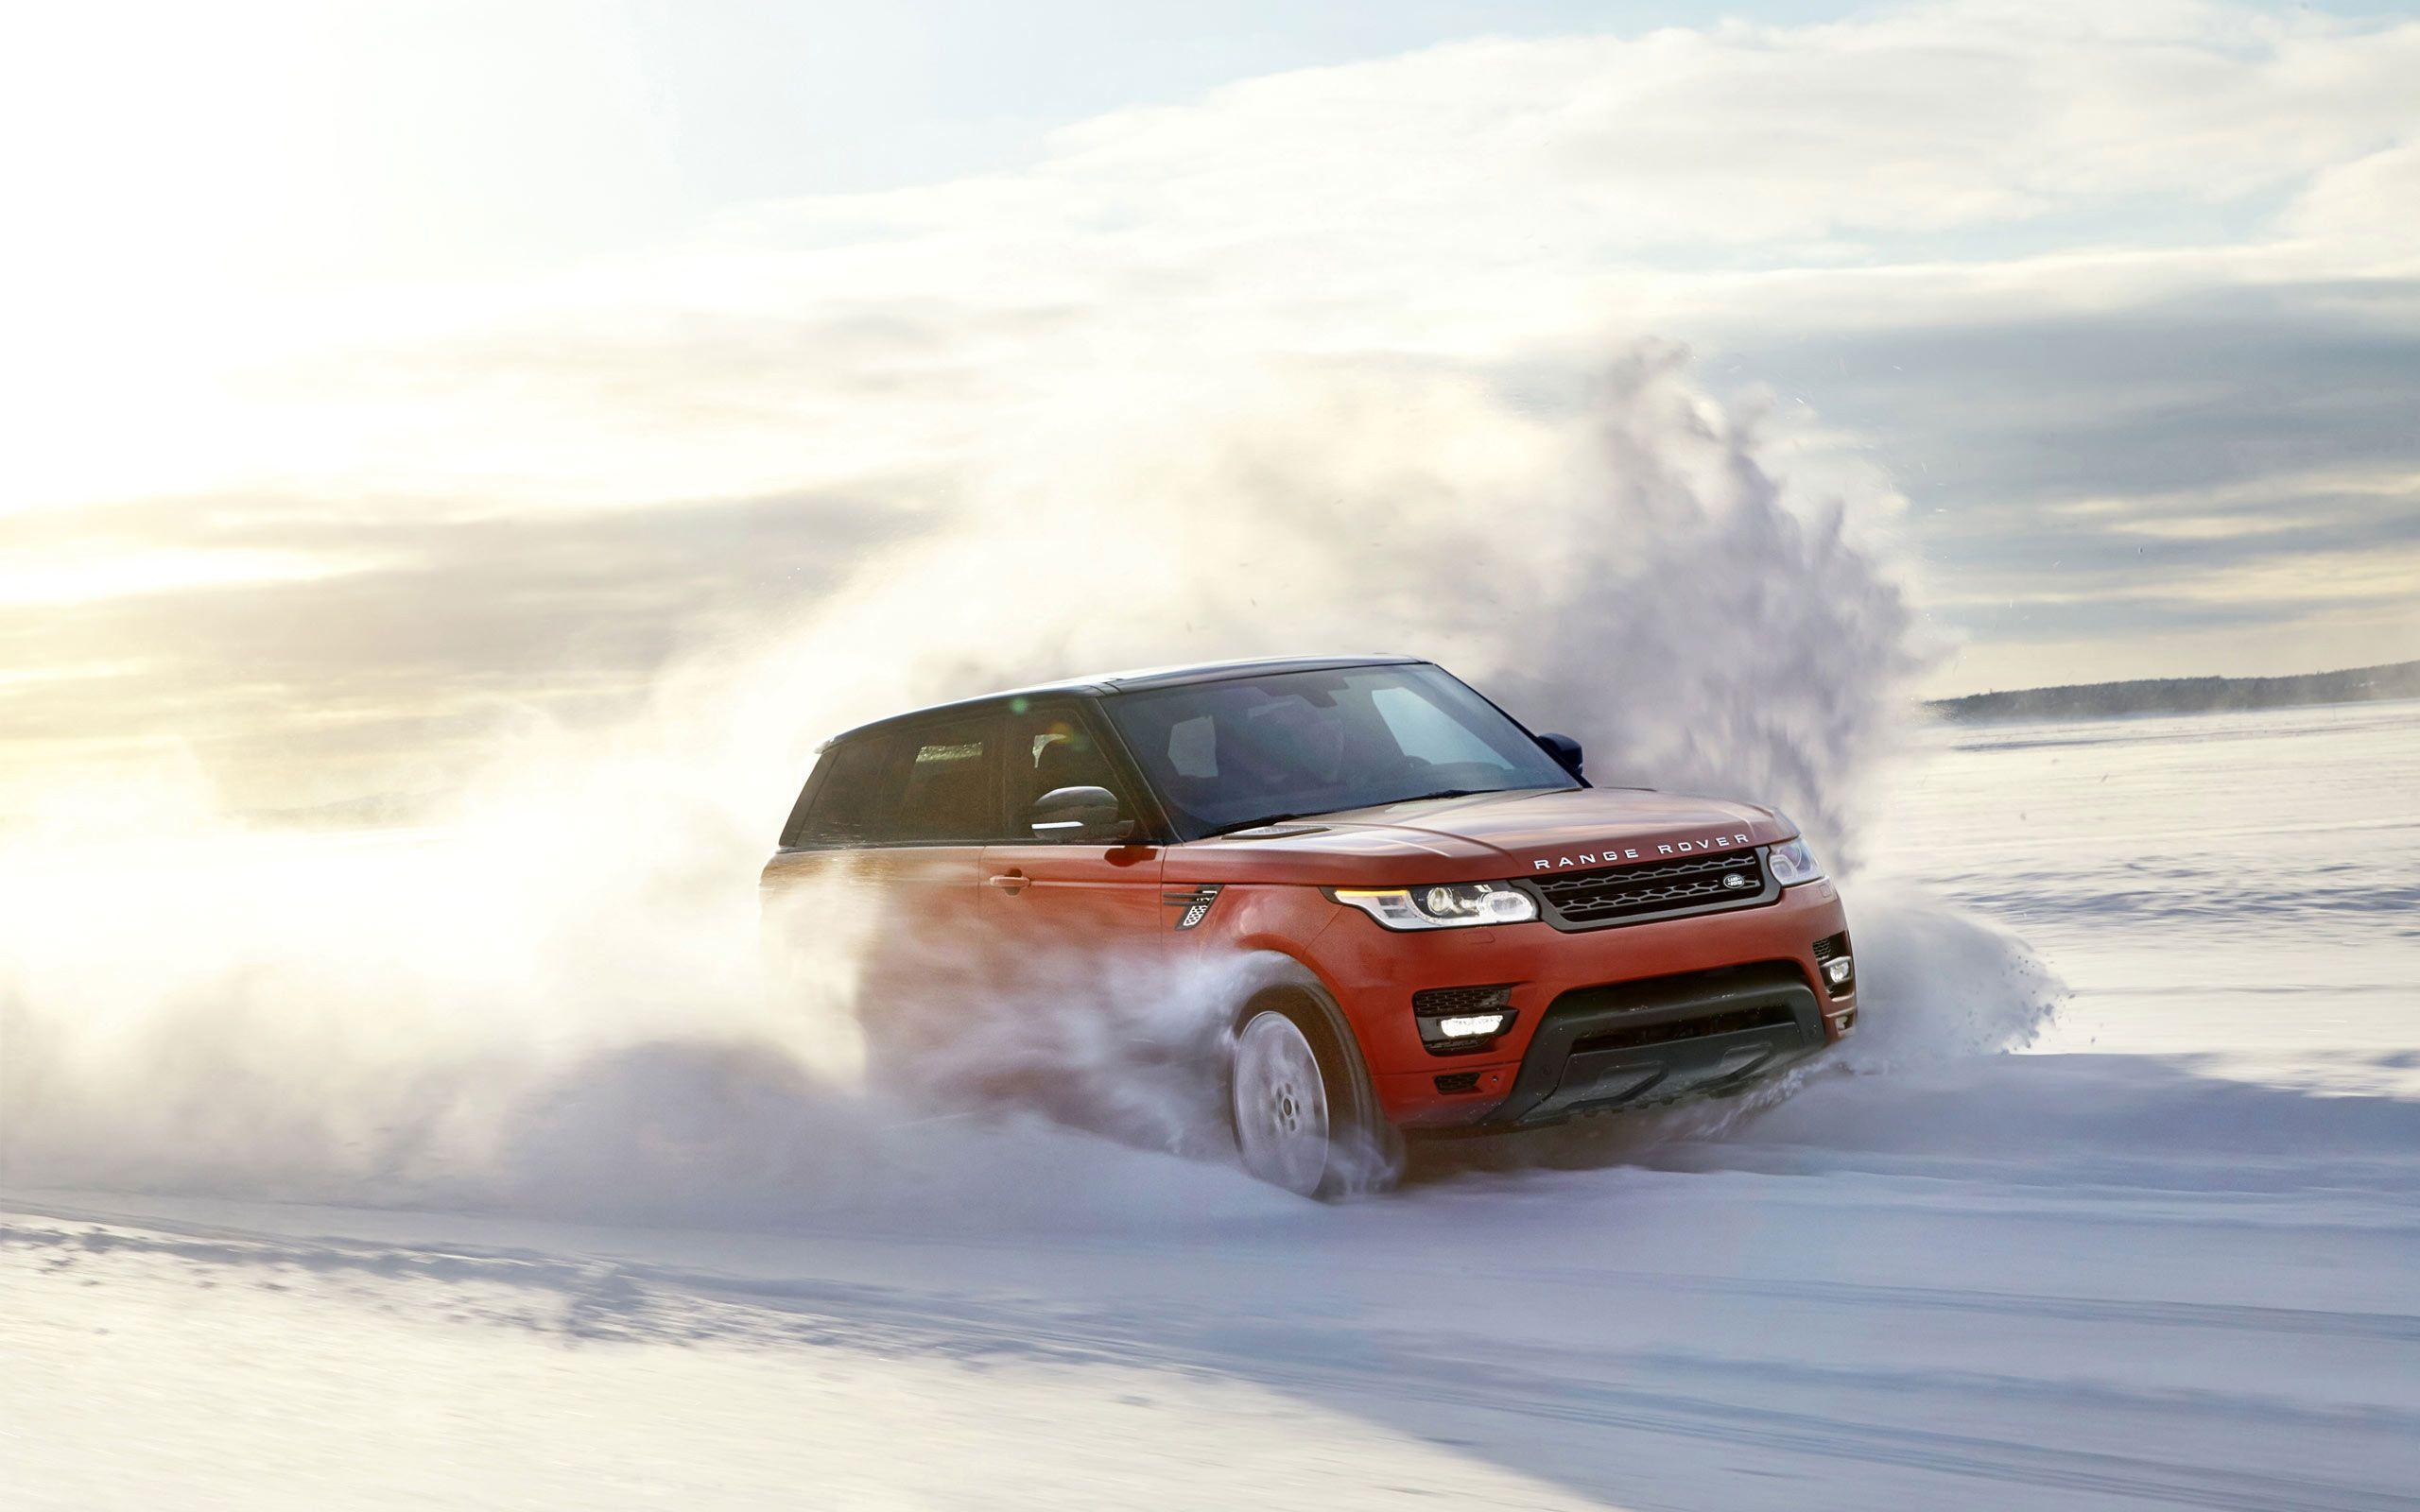 2014 Land Rover Range Rover Sport Wallpaper | HD Car Wallpapers